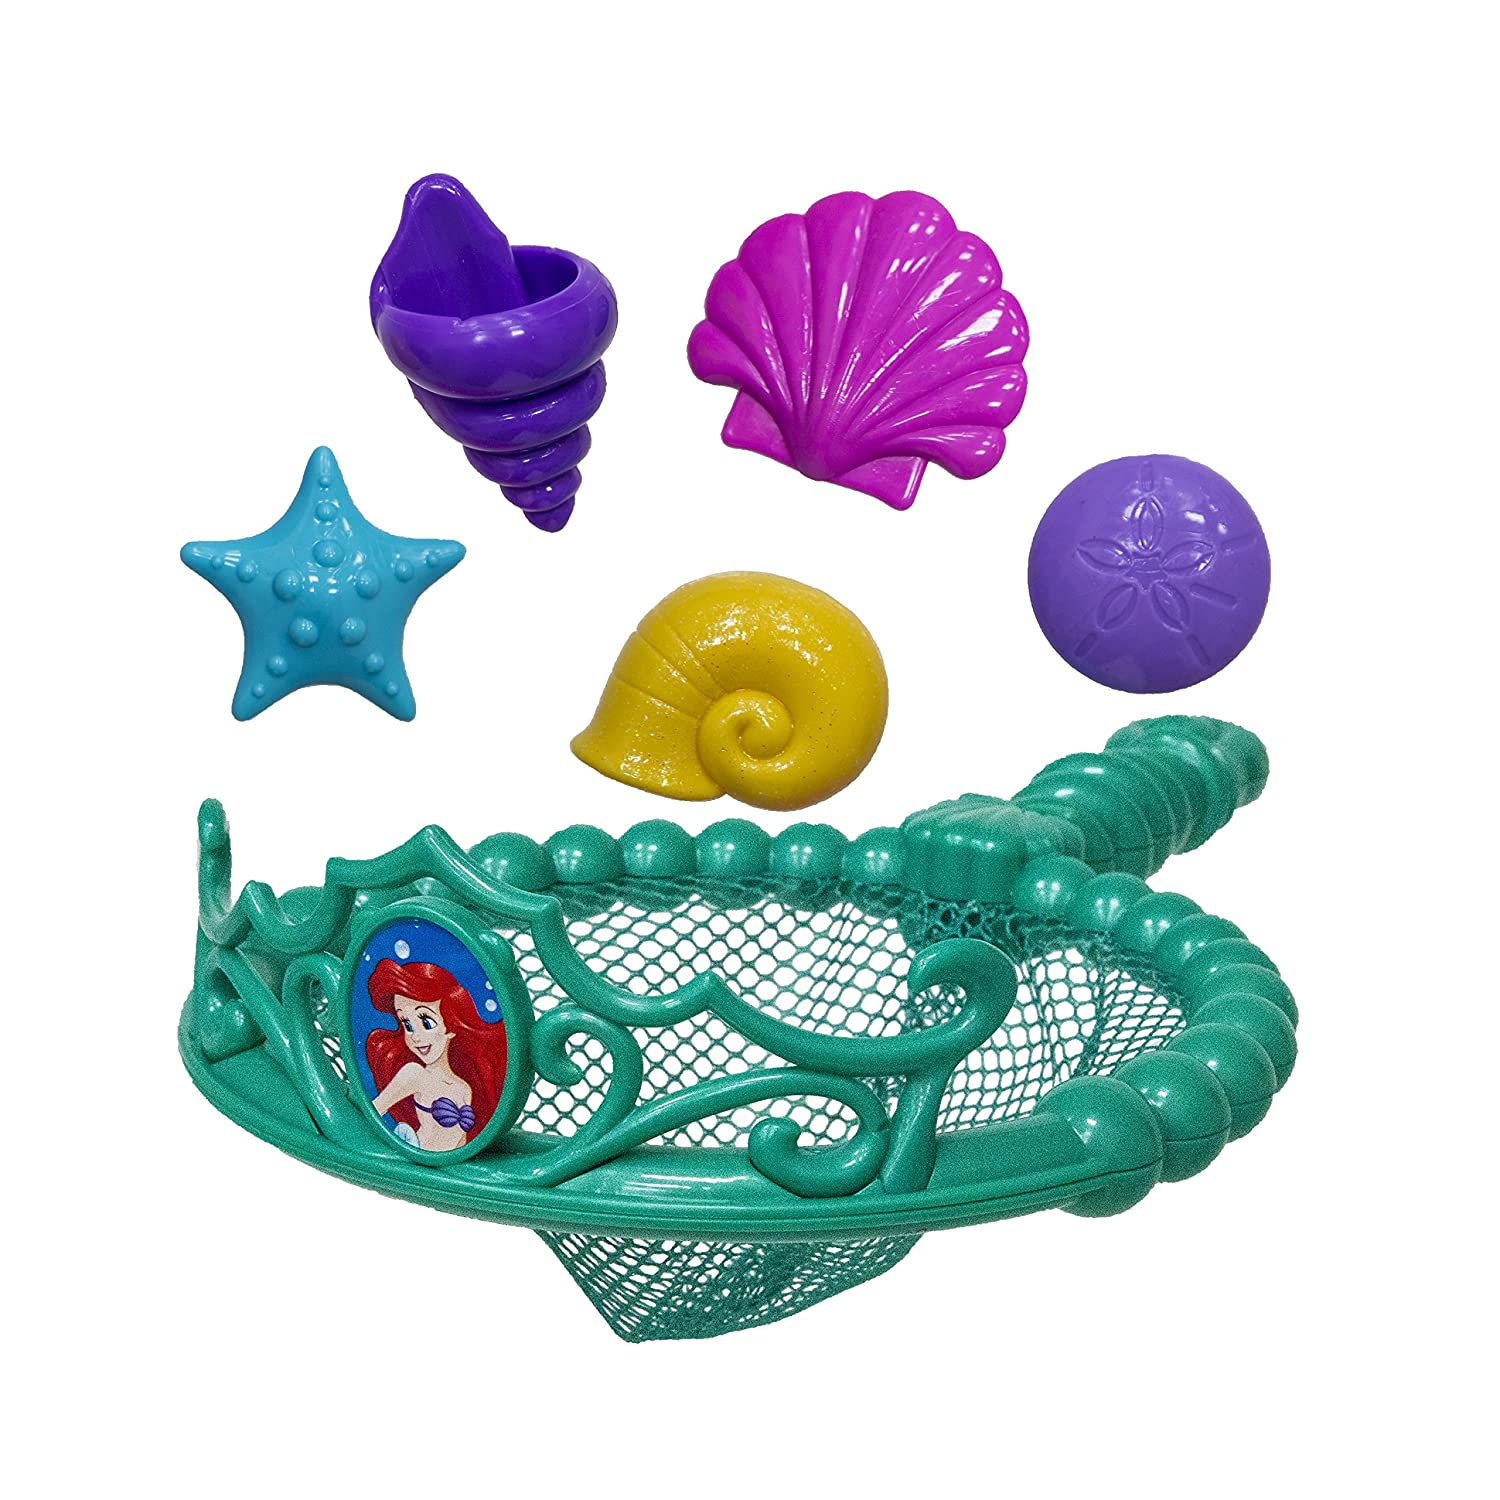 Swimways Girl's Disney Princess Tiara Dive & Catch Game Toy